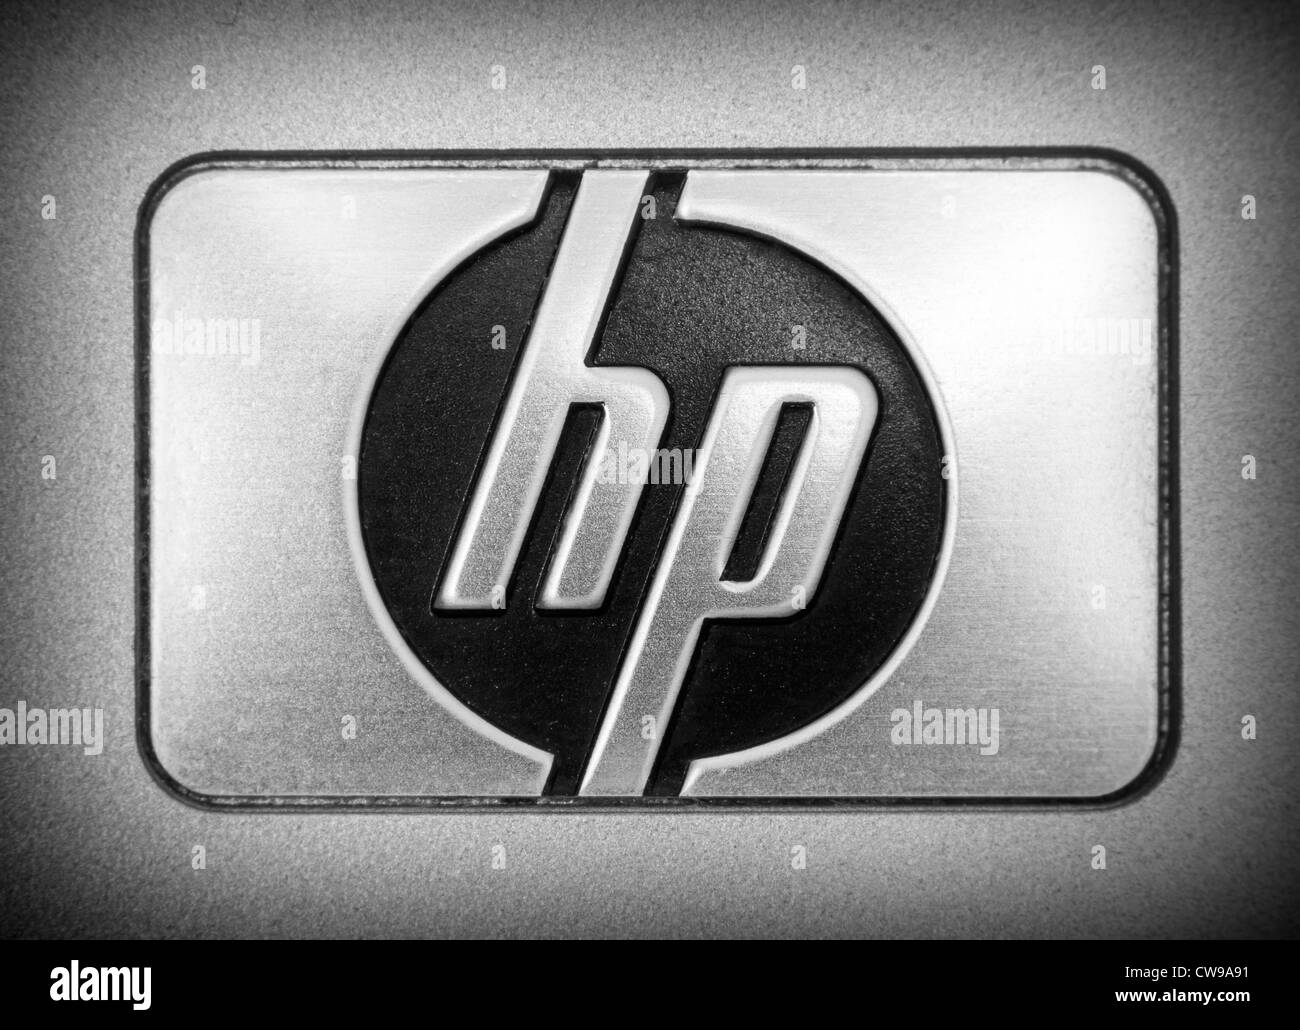 Hp Logo Stock Photos & Hp Logo Stock Images - Alamy